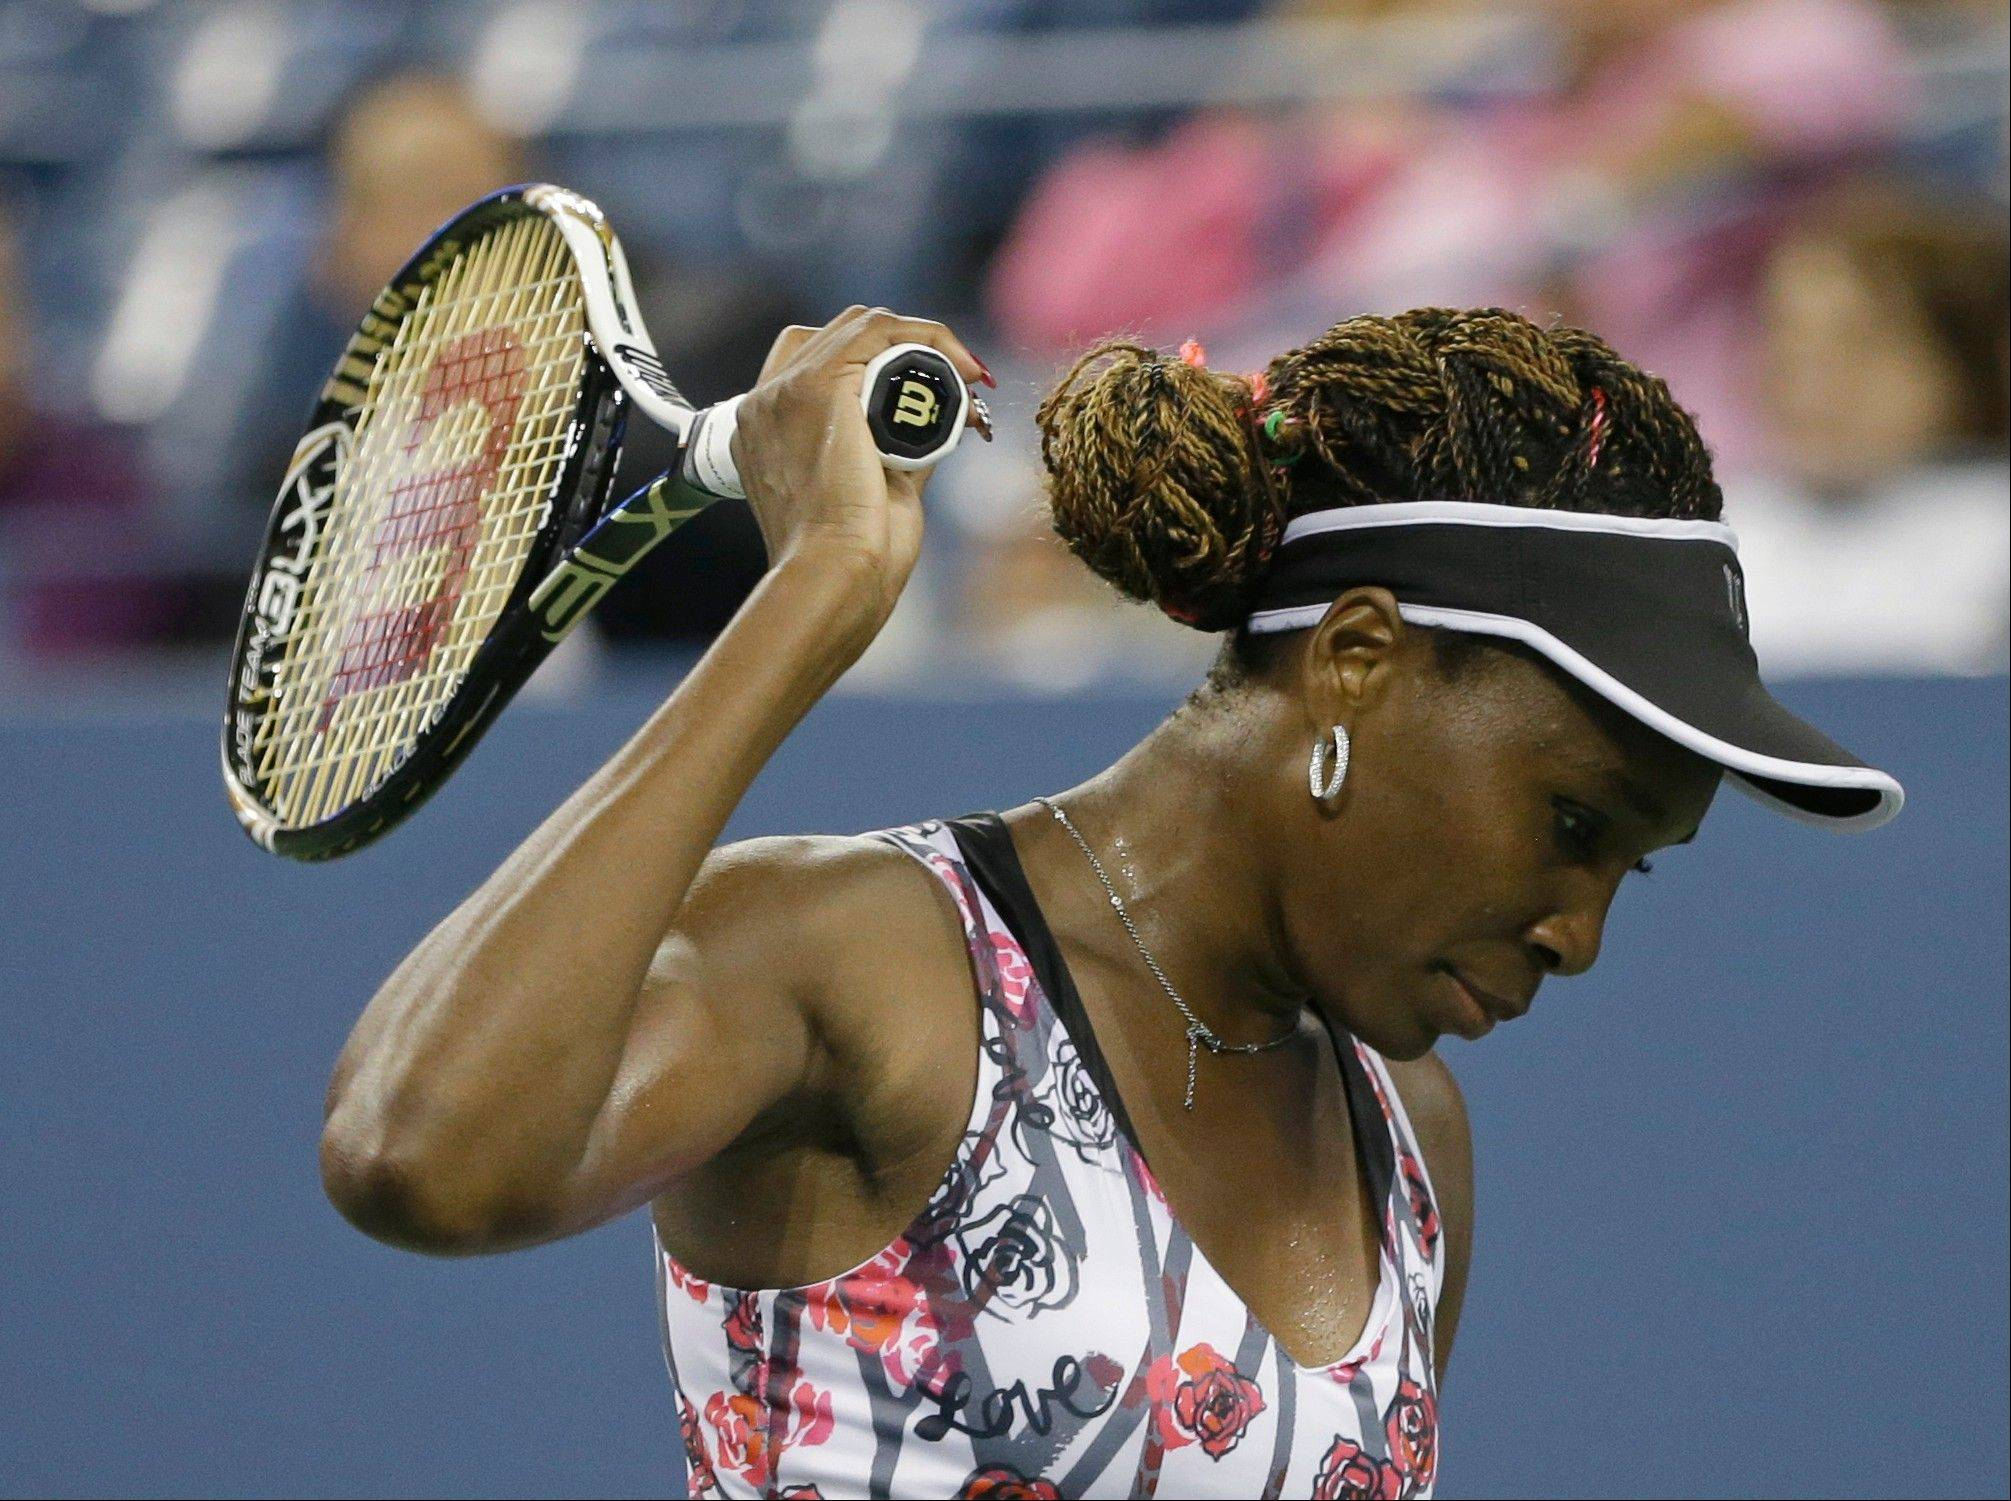 Venus Williams fell 6-2, 5-7, 7-5 to sixth-seeded Angelique Kerber of Germany at the U.S. Open.